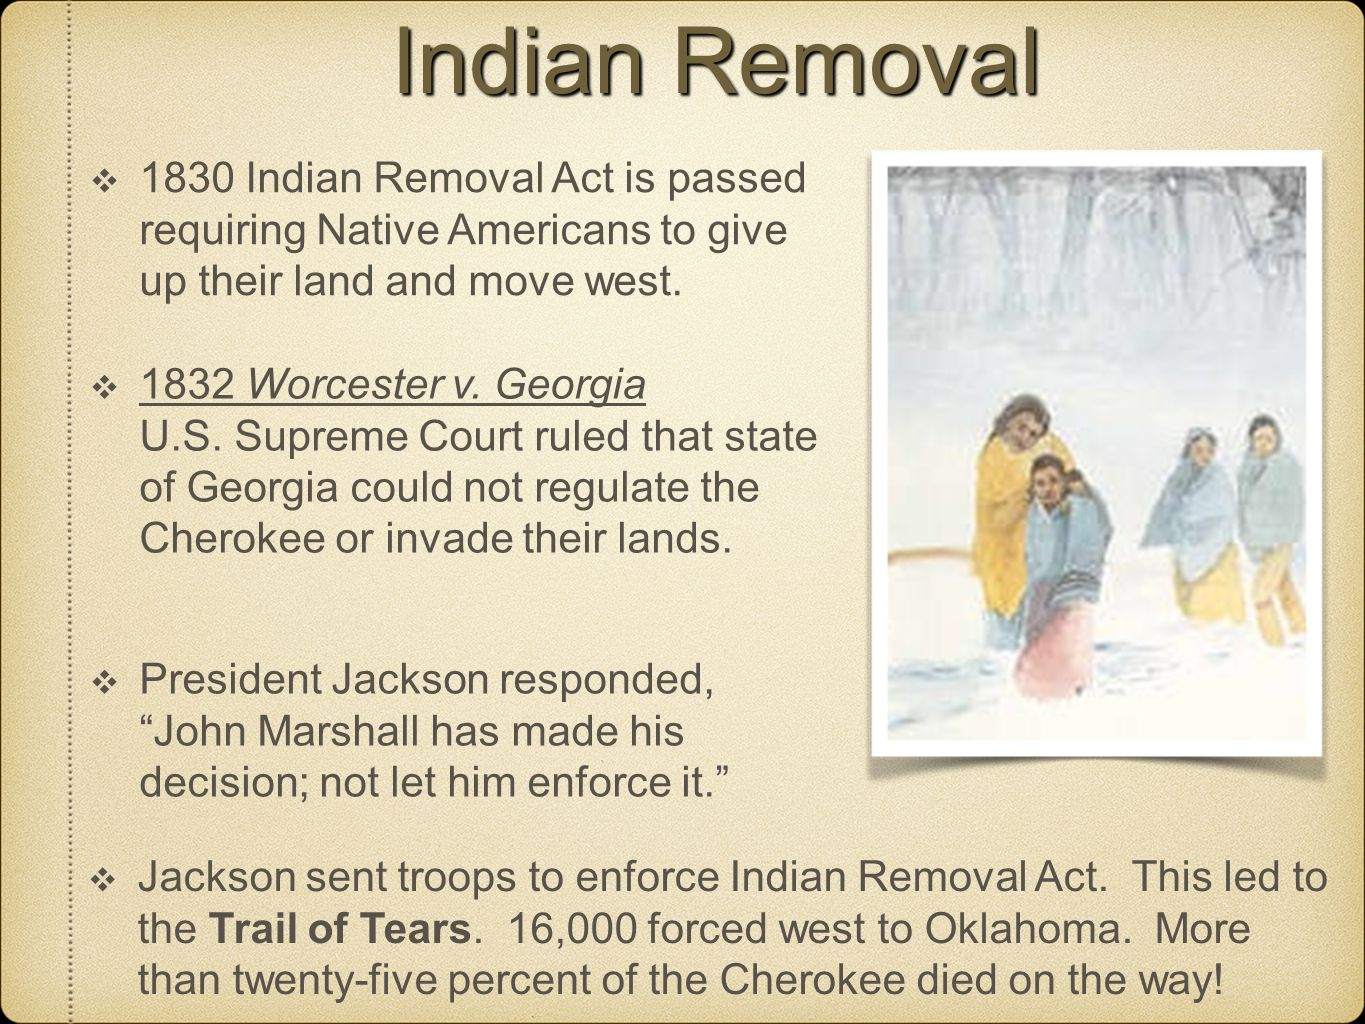 andrew jackson and the indian removal in america Indian removal act summary: after demanding both political and military action on removing native american indians from the southern states of america in 1829, president andrew jackson signed this into law on may 28, 1830.